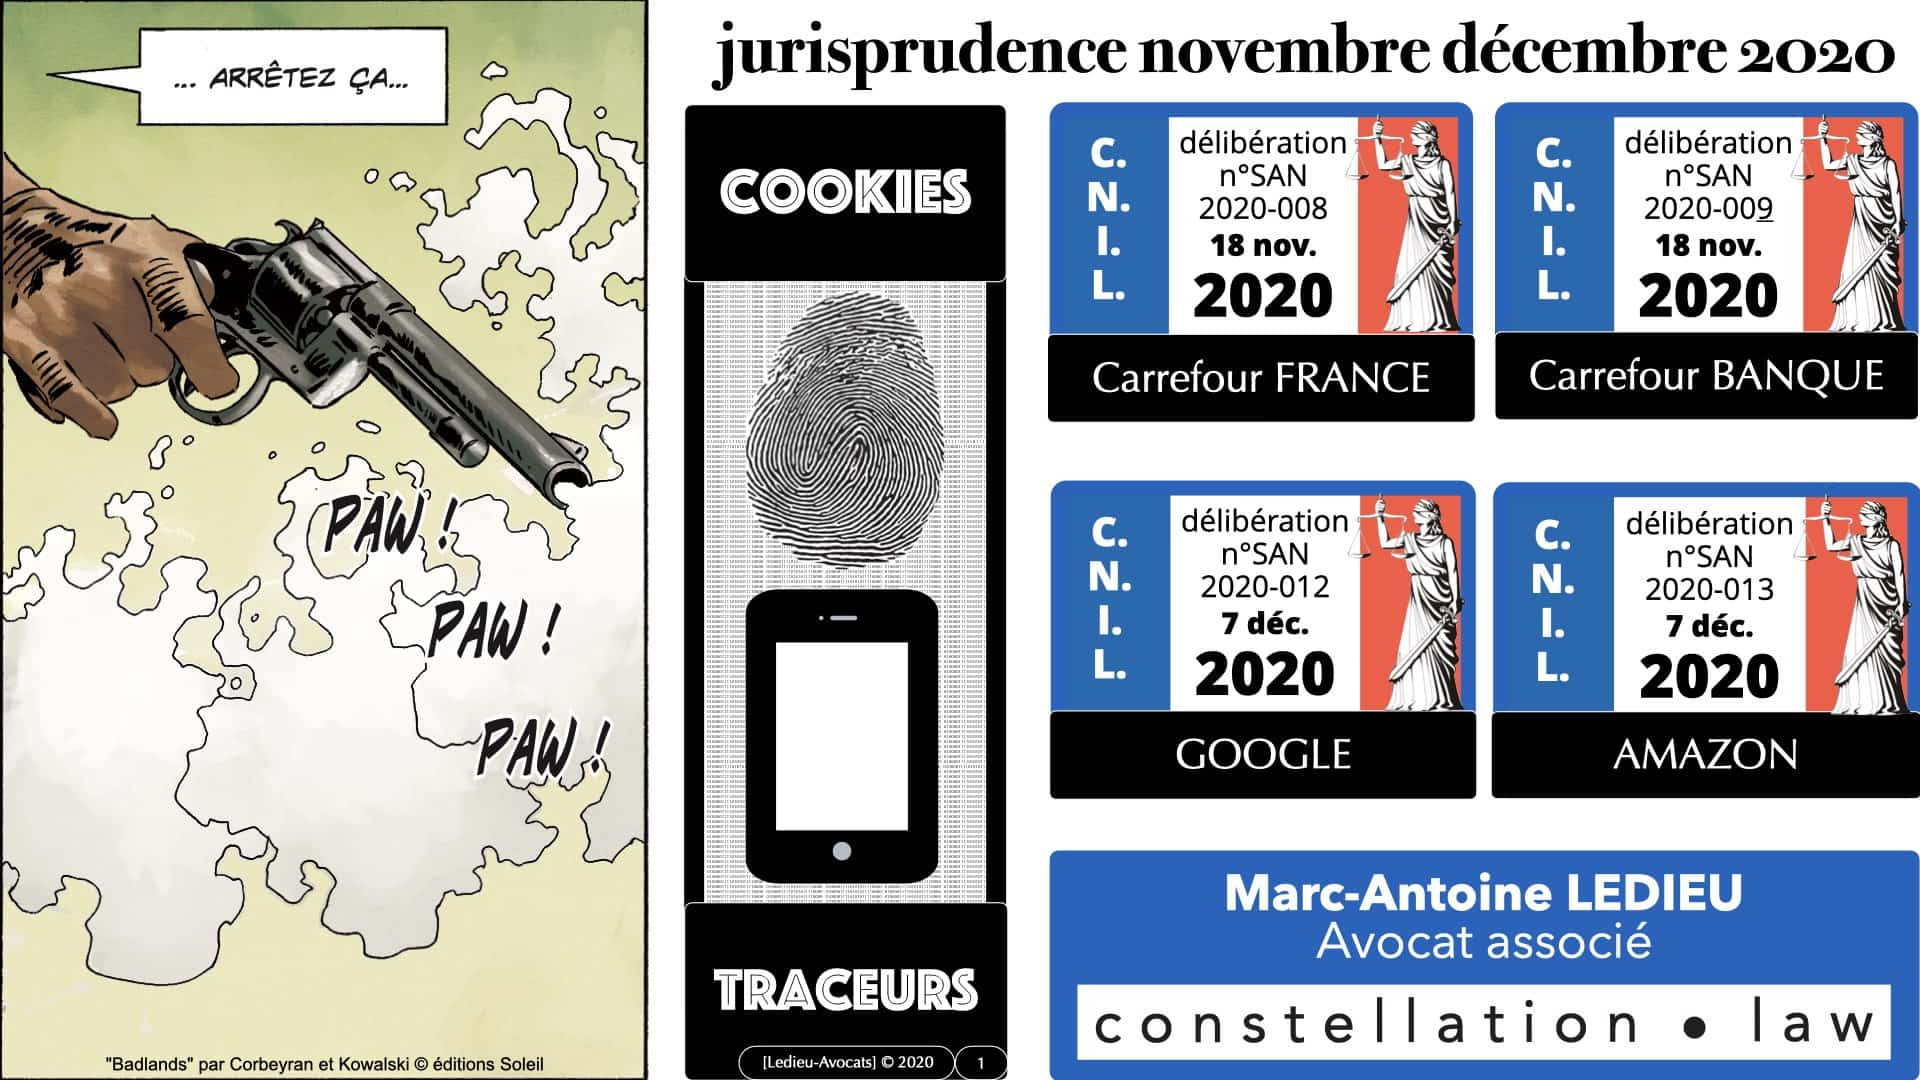 jurisprudence CNIL cookie traceur (nov. + déc. 2020) : analyse